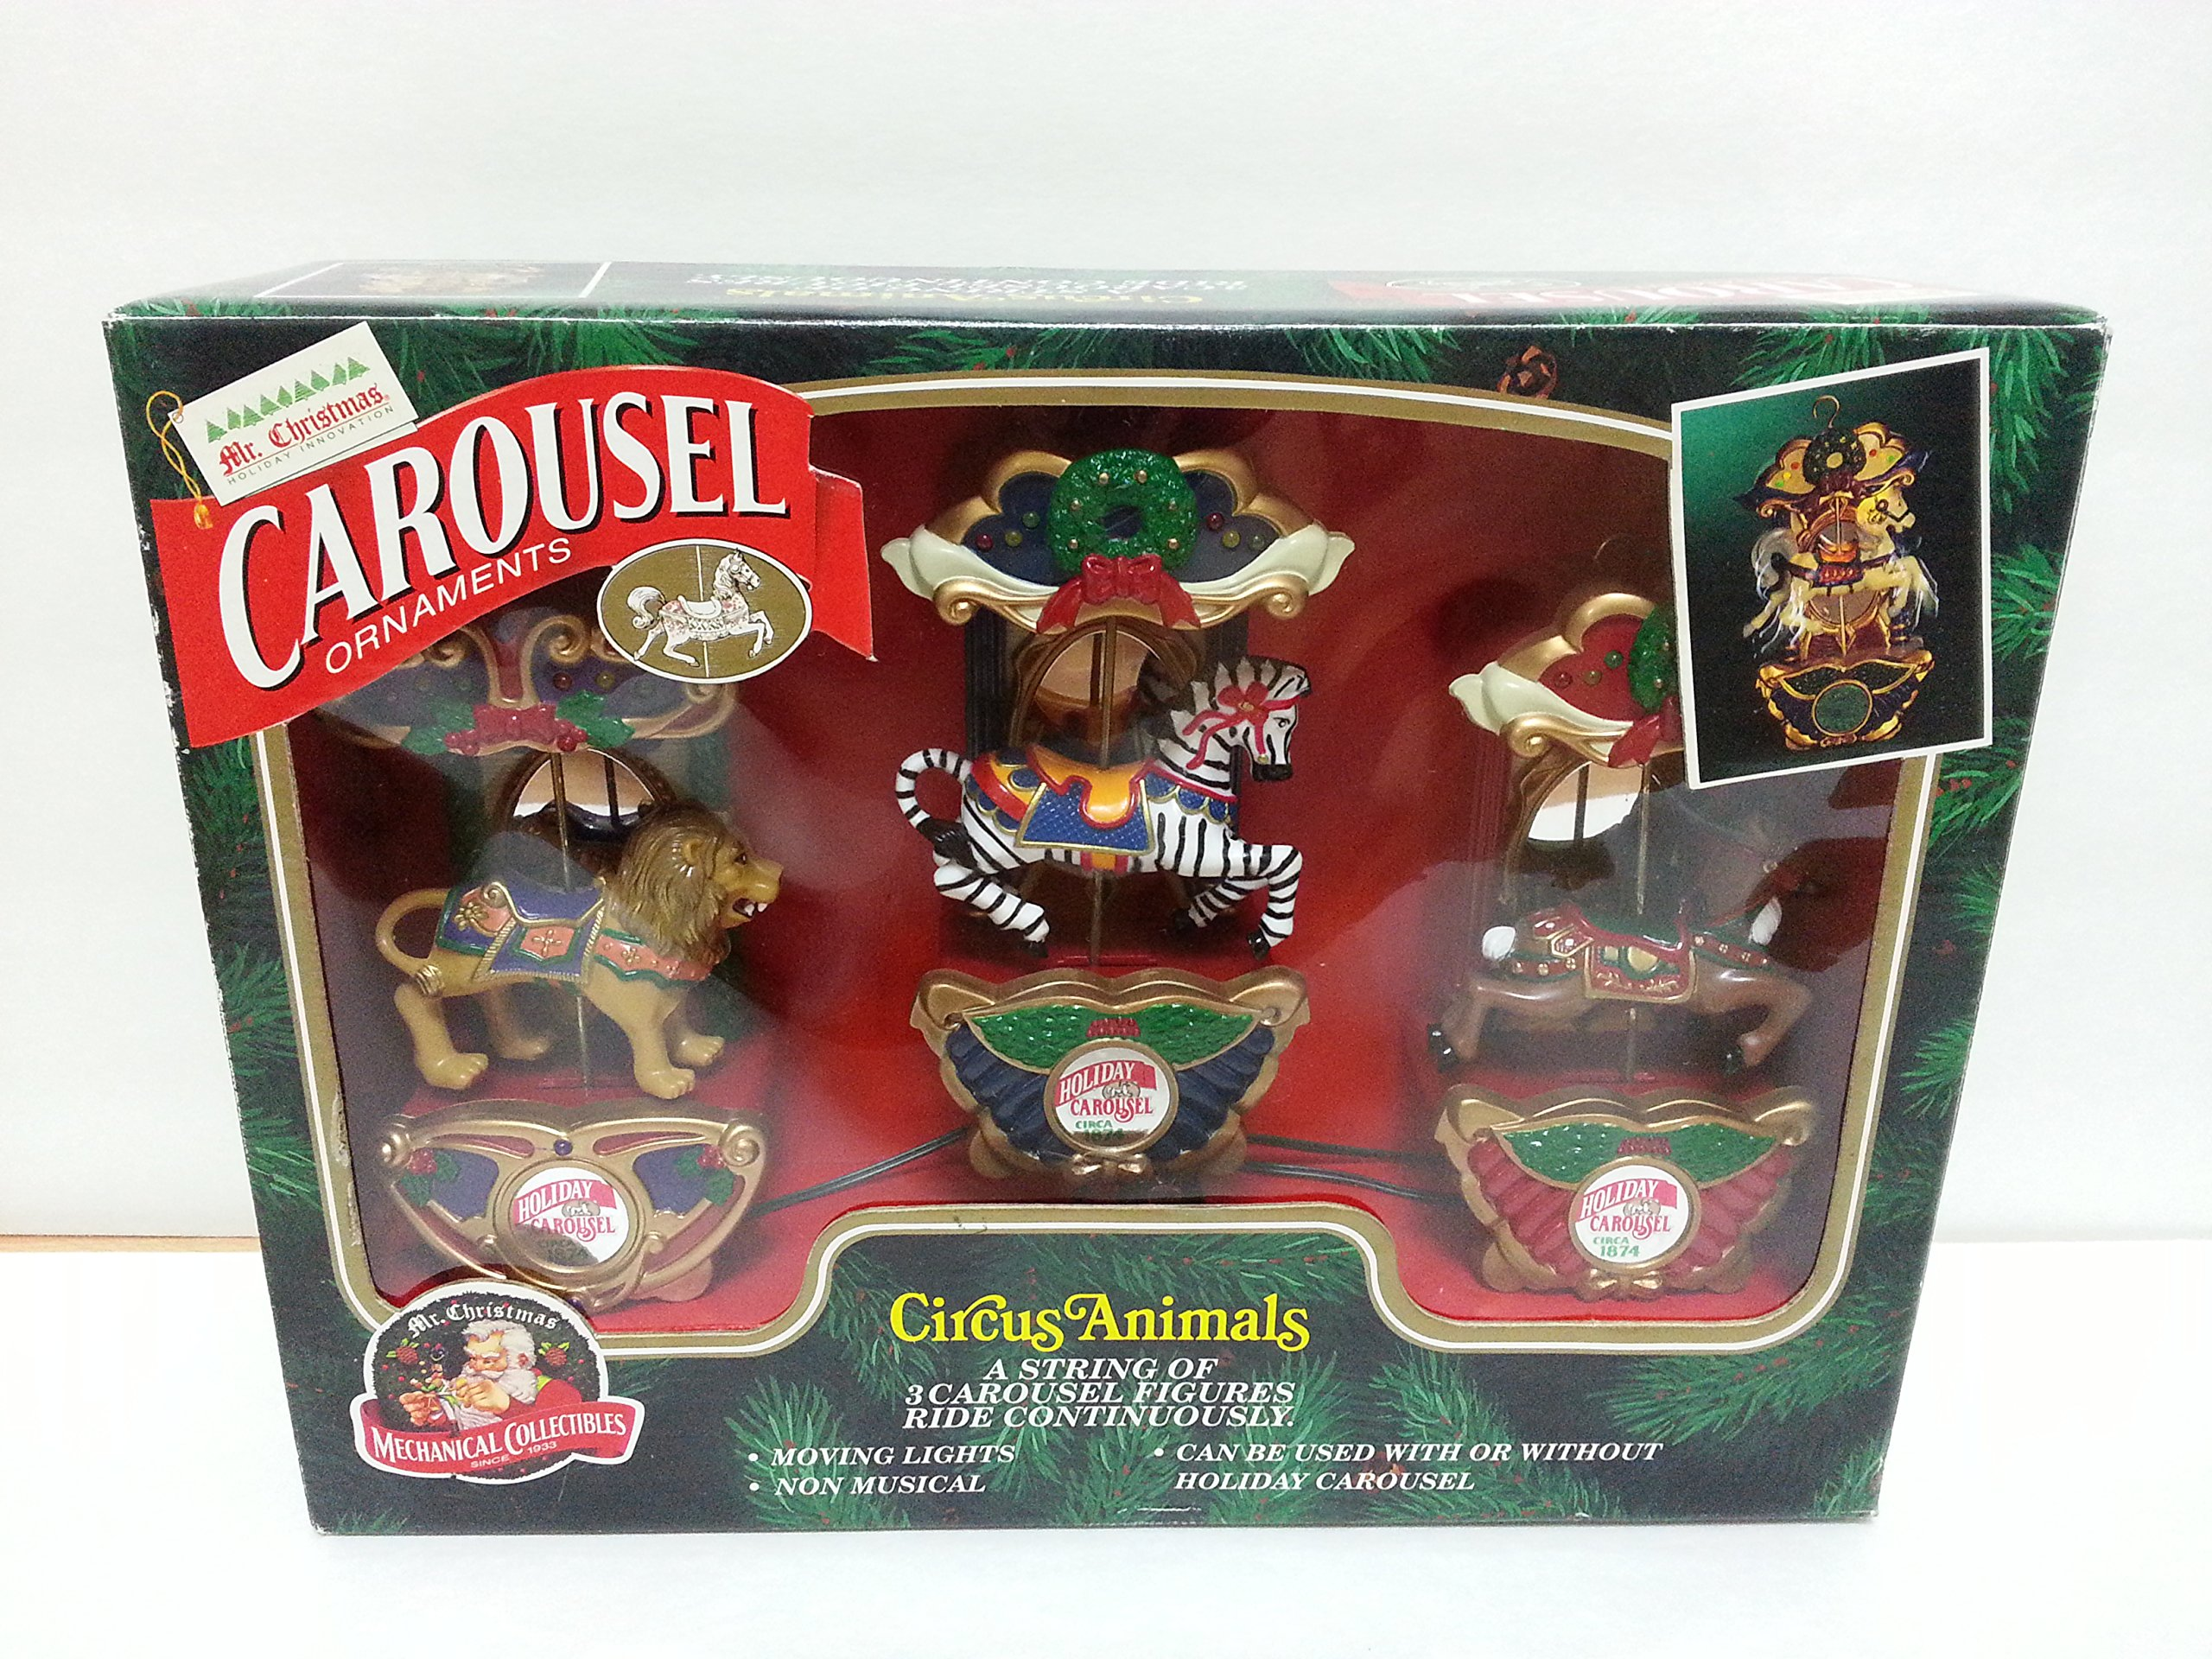 Mr. Christmas Carousel Ornaments Circus Animals - A String of 3 Carousel Figures Ride Continuously